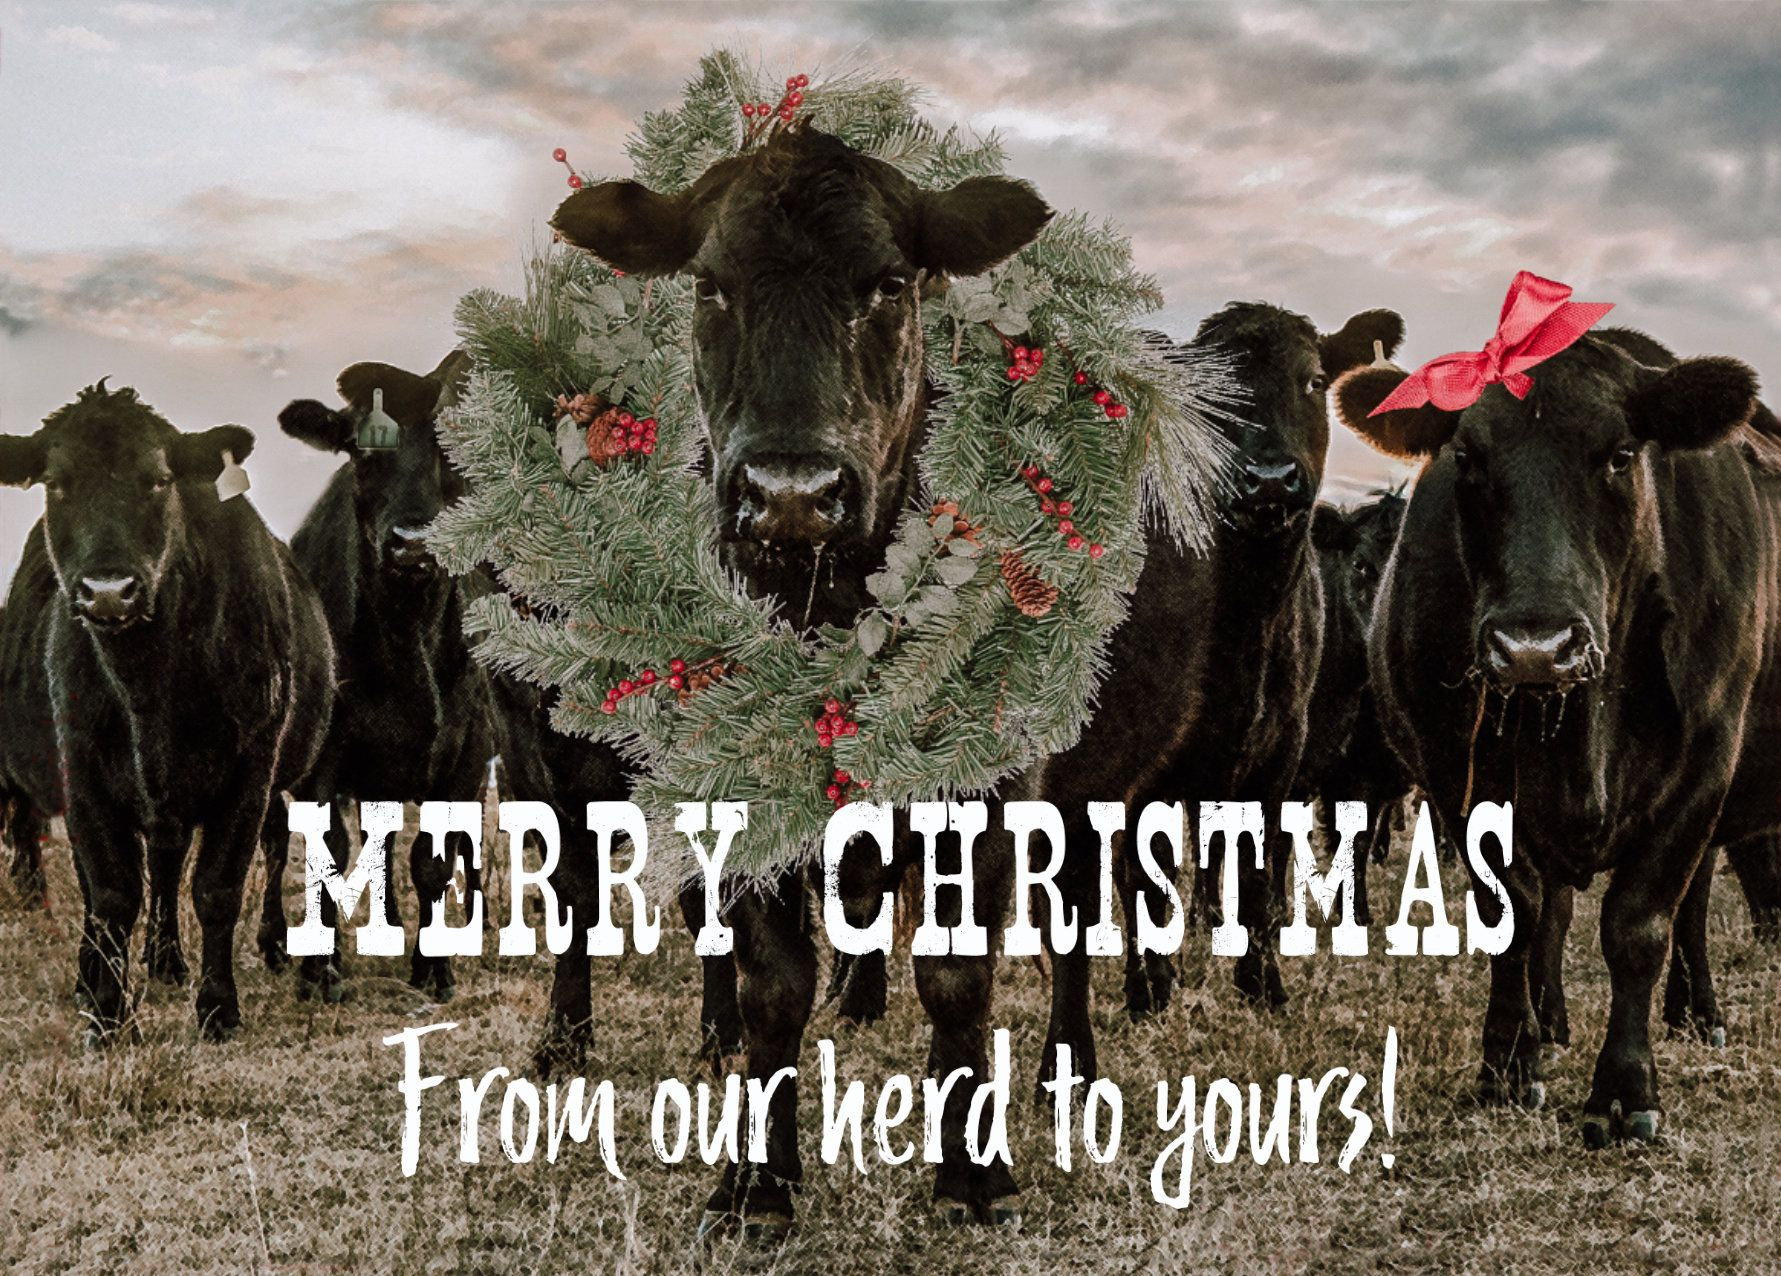 Western Christmas cards, Angus cattle holiday cards - pack of 25 printed cards, blank inside or ...